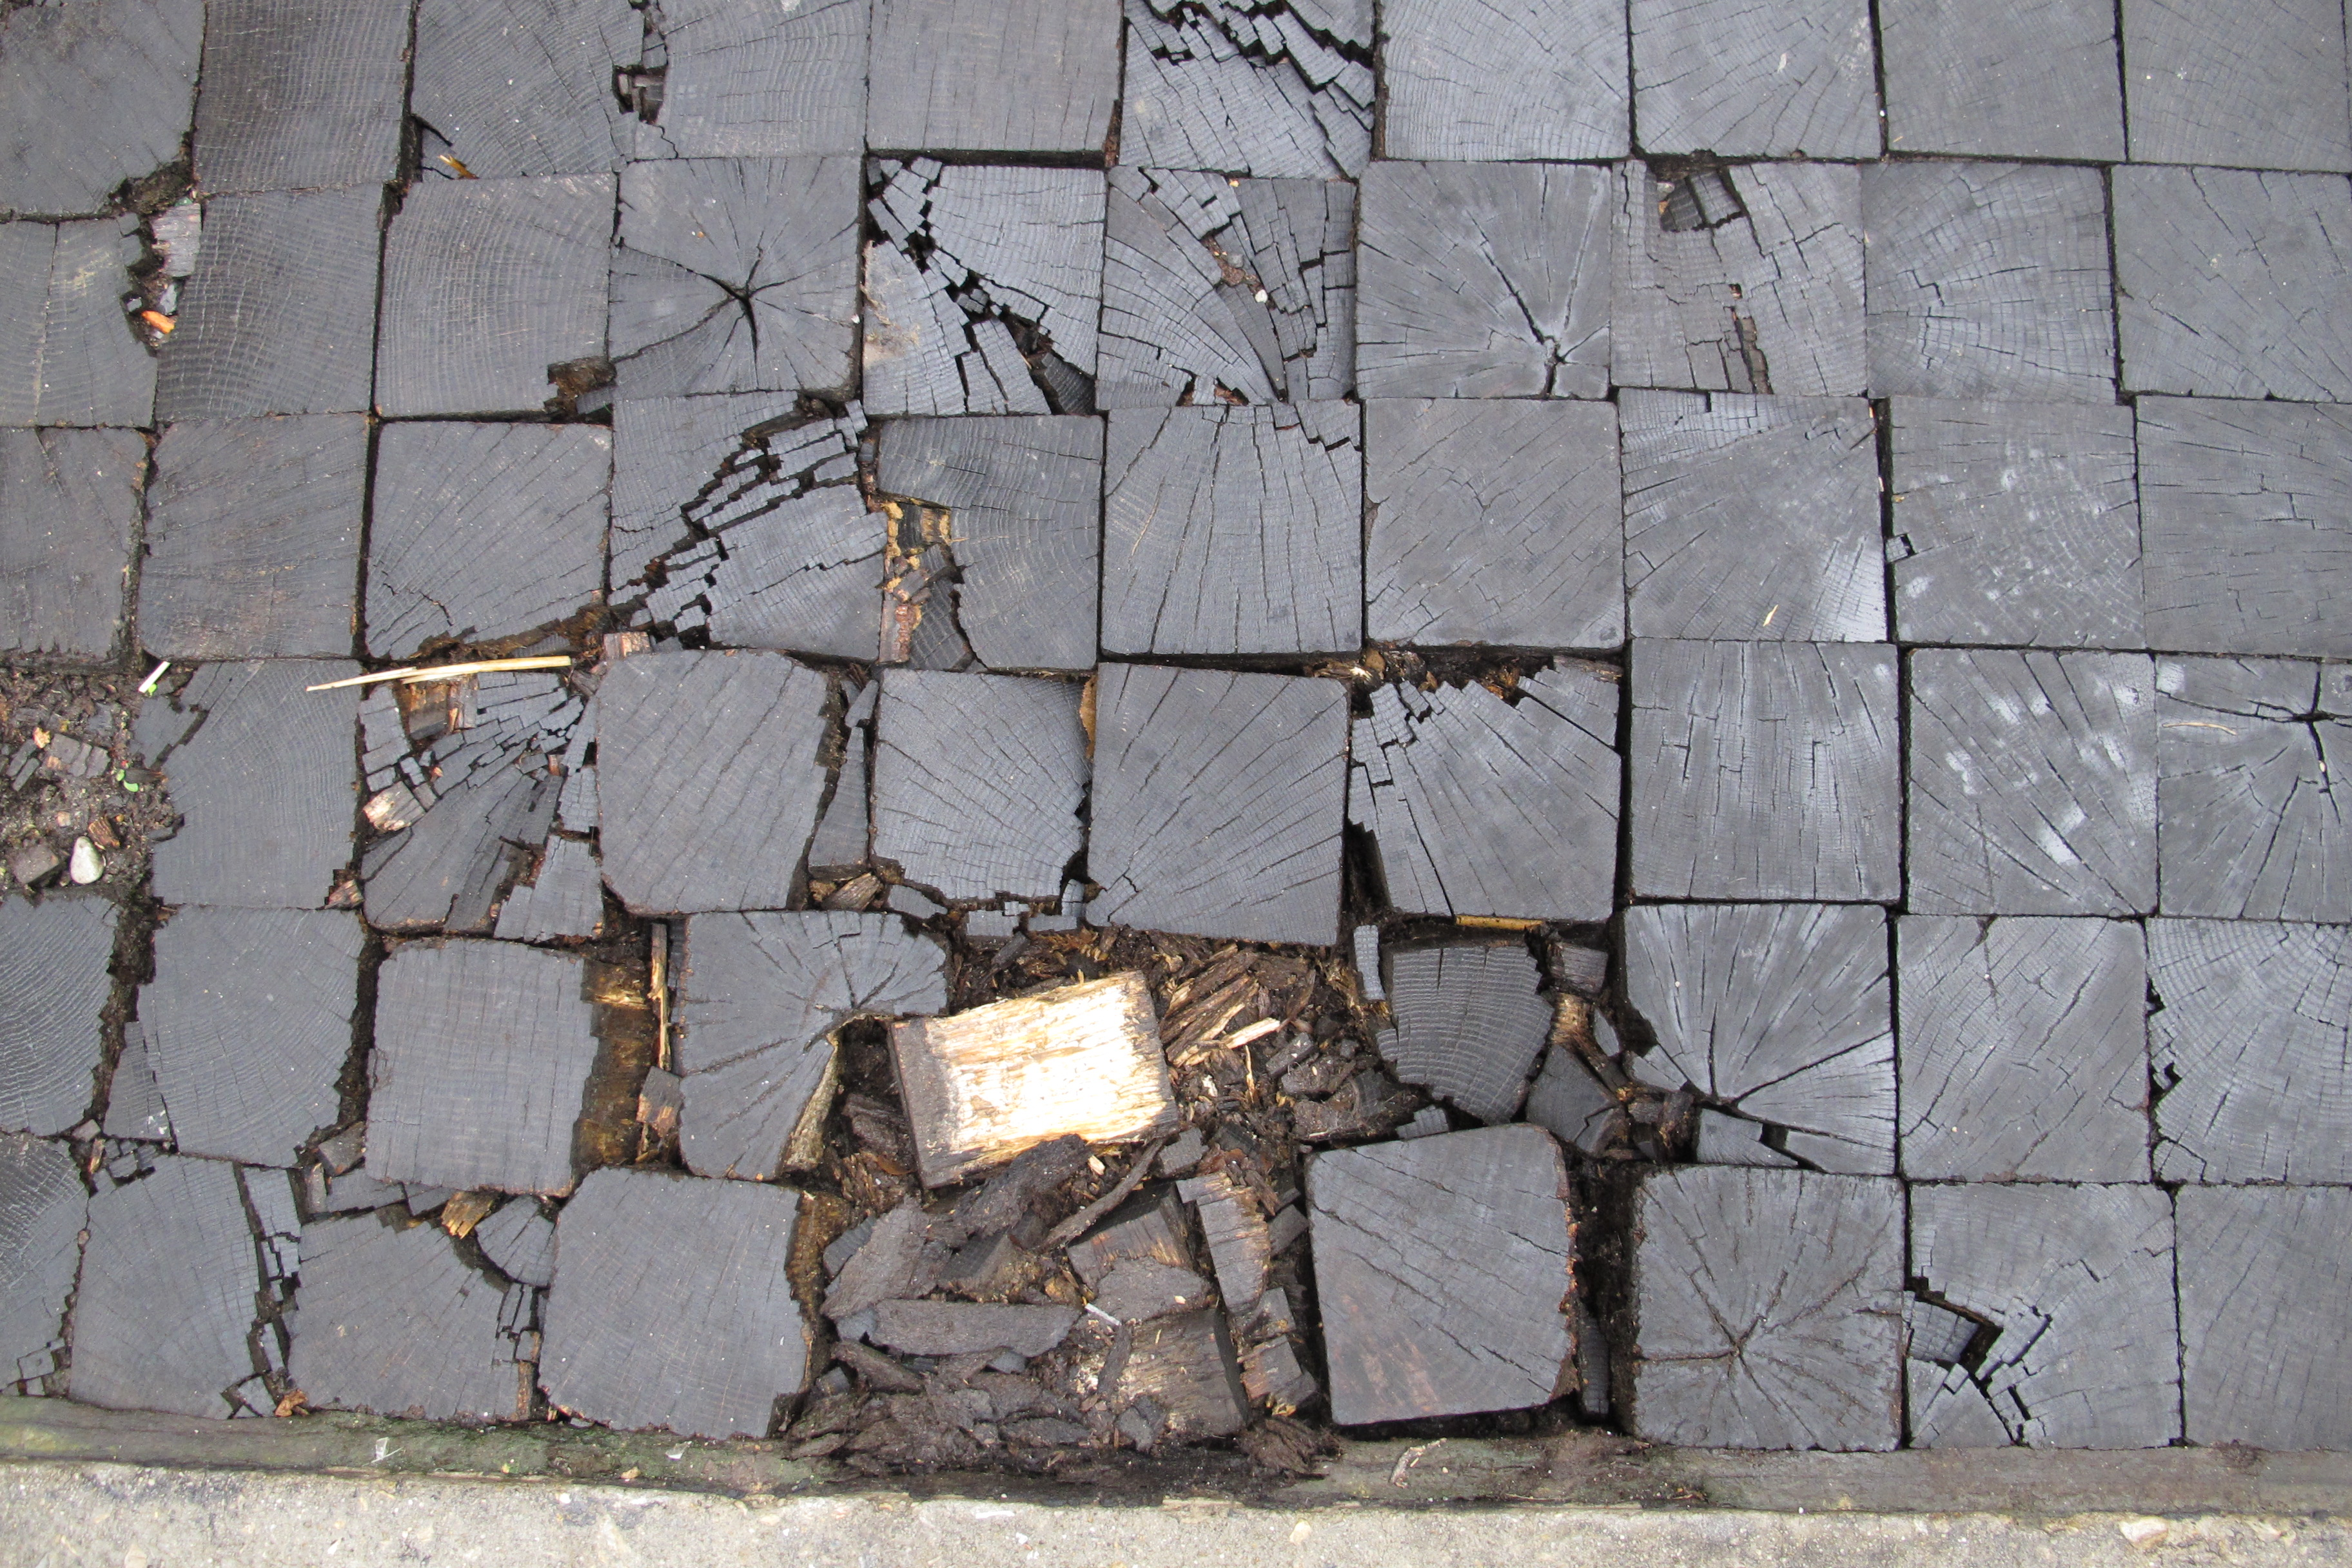 Camac Street's oak block pavers were getting chewed up. (October 9, 2012)